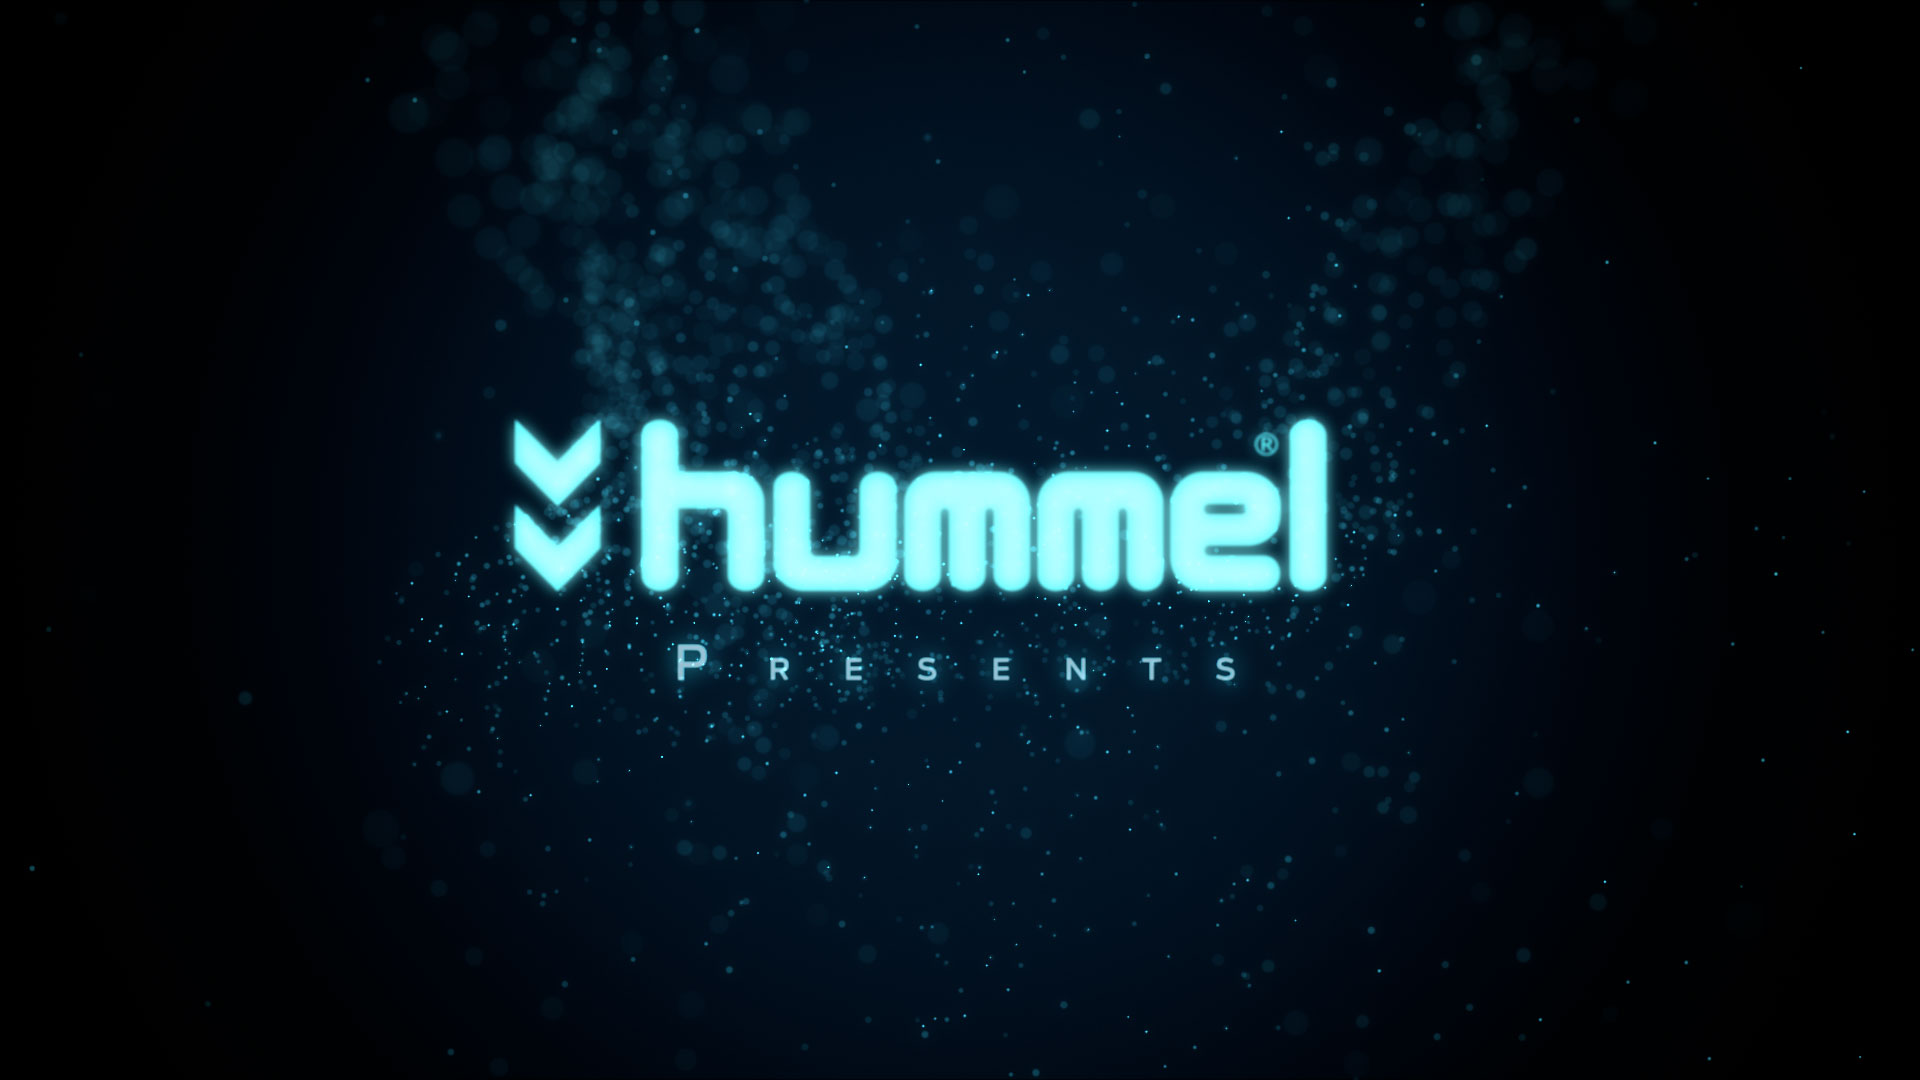 Wallpaper Hd Om Hummel Rebel Karma Sunday Studio